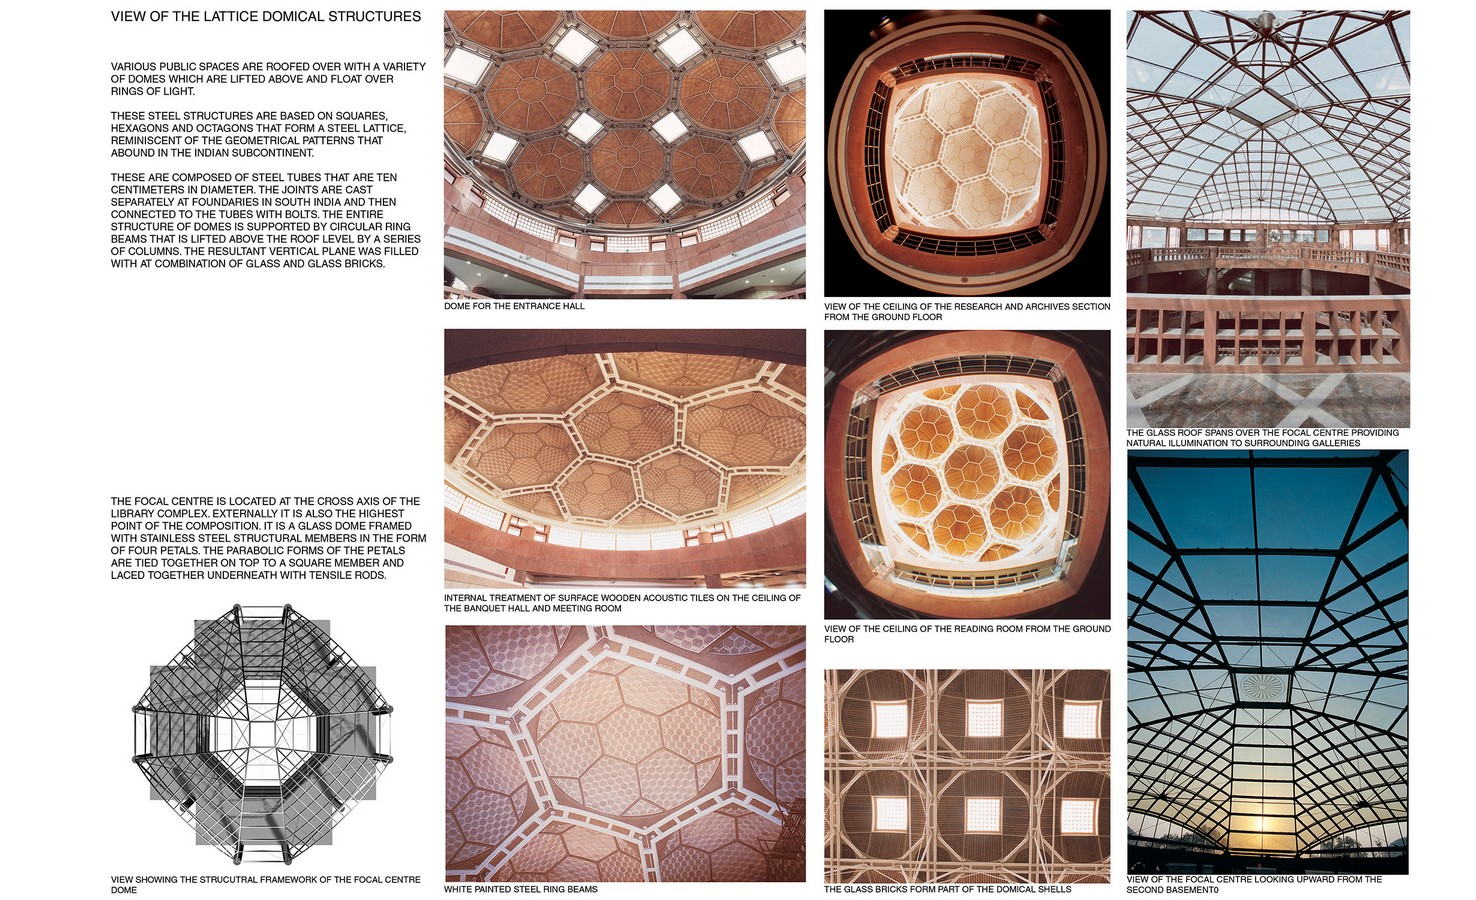 Parliament Library Building by Raj Rewal: Enlightenment translated into architecture - Sheet9